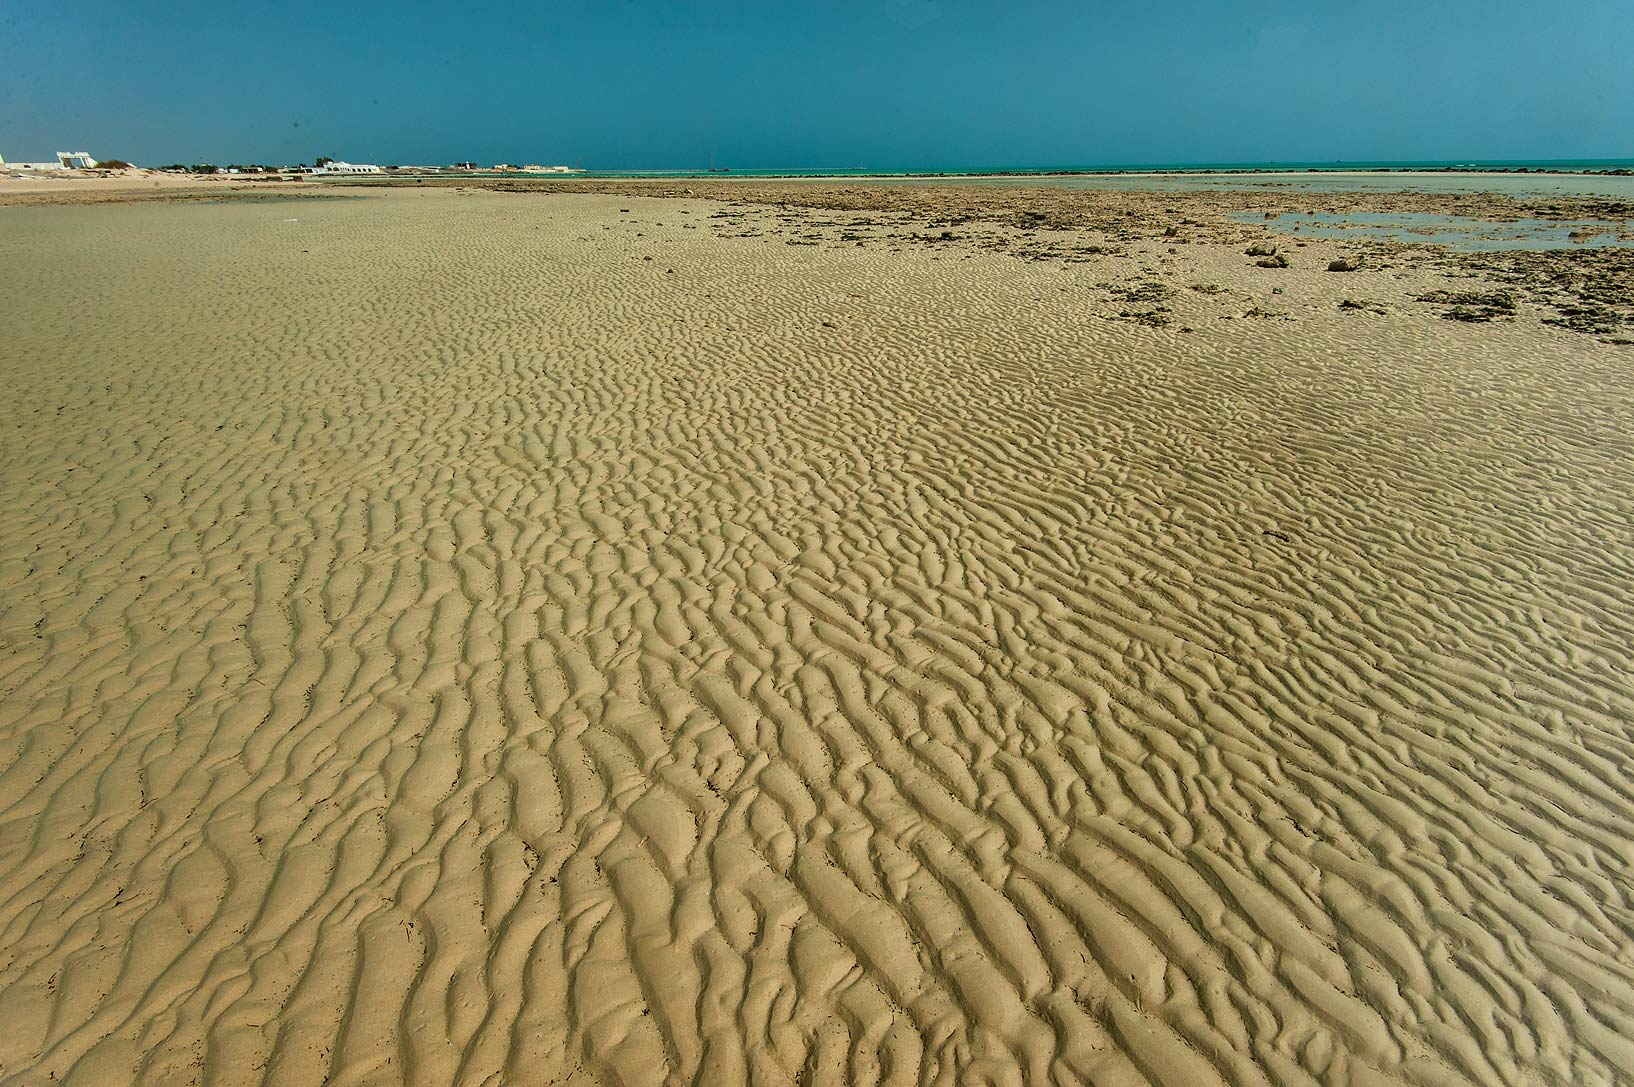 Sand ripples on French Beach (42 km Beach) in Marouna, on north-eastern coast. Qatar